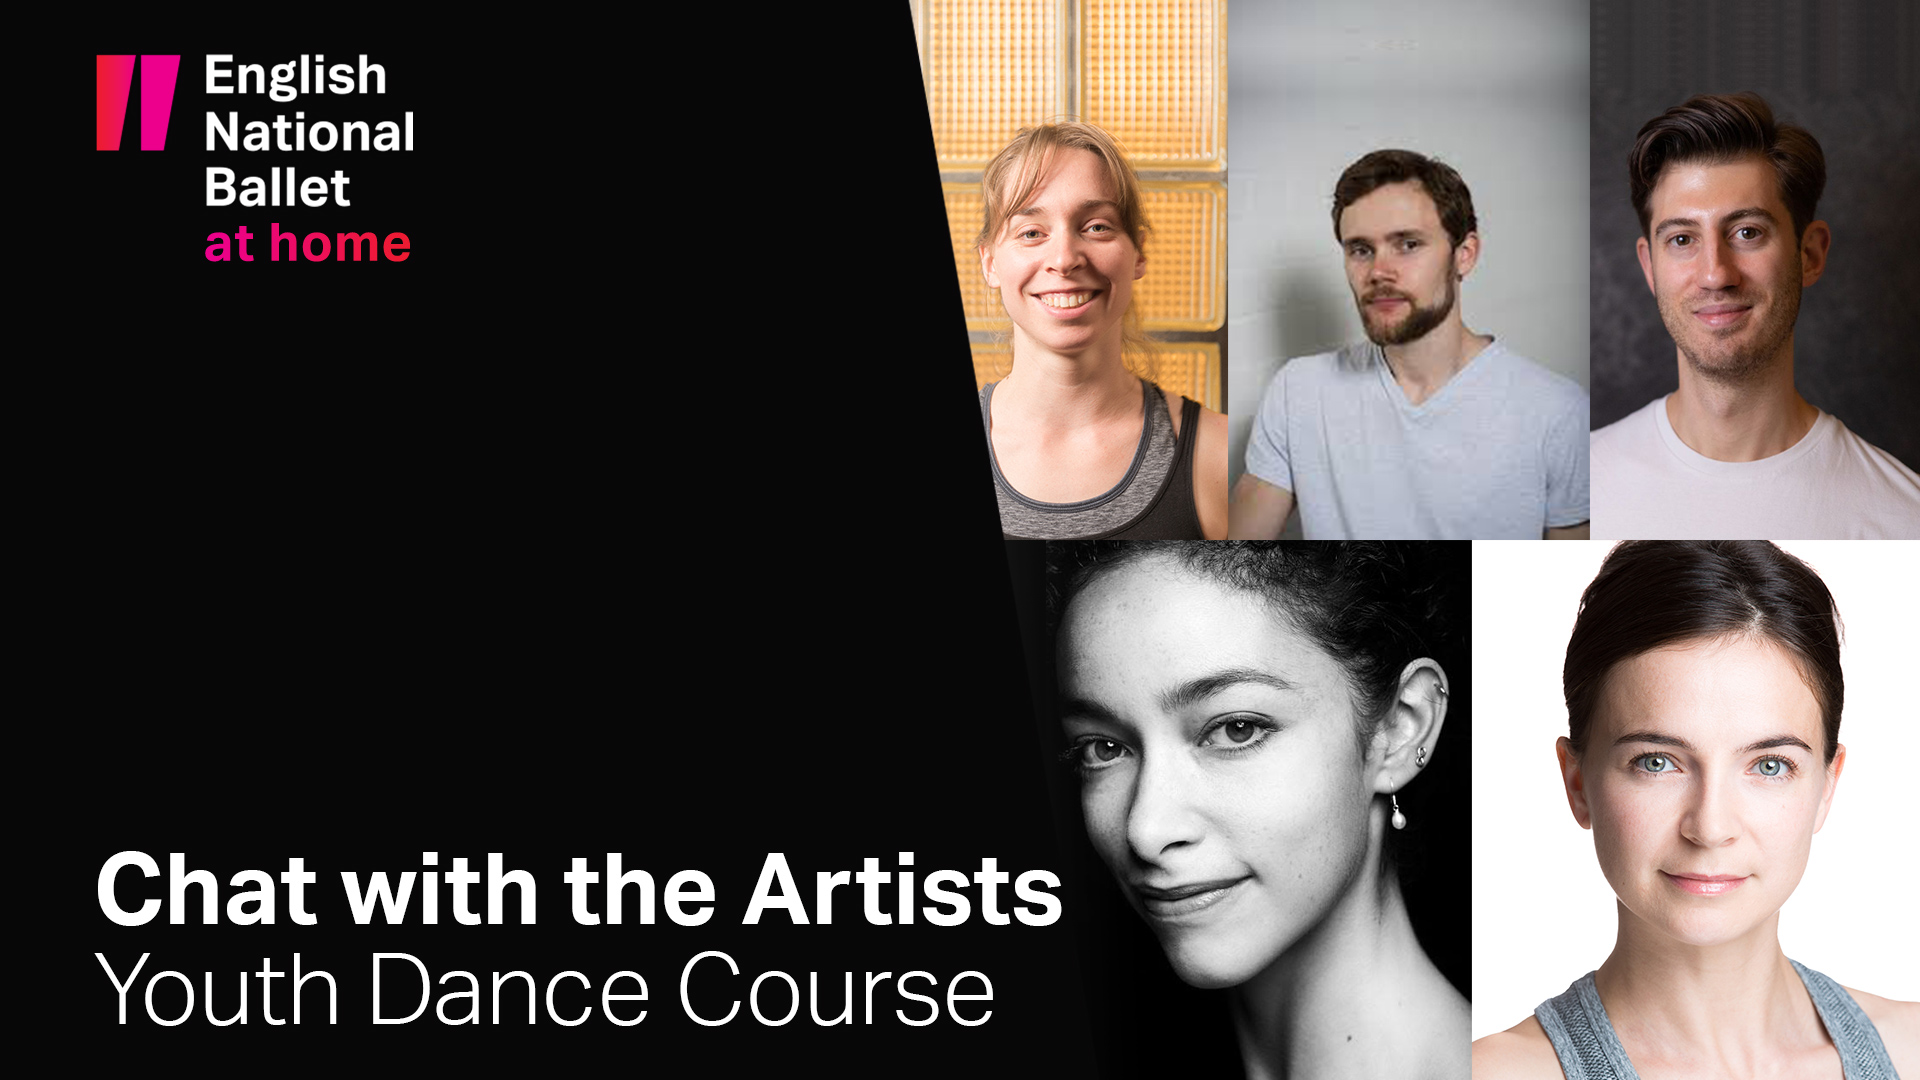 Youth Dance Course: Chat with the Artists | English National Ballet